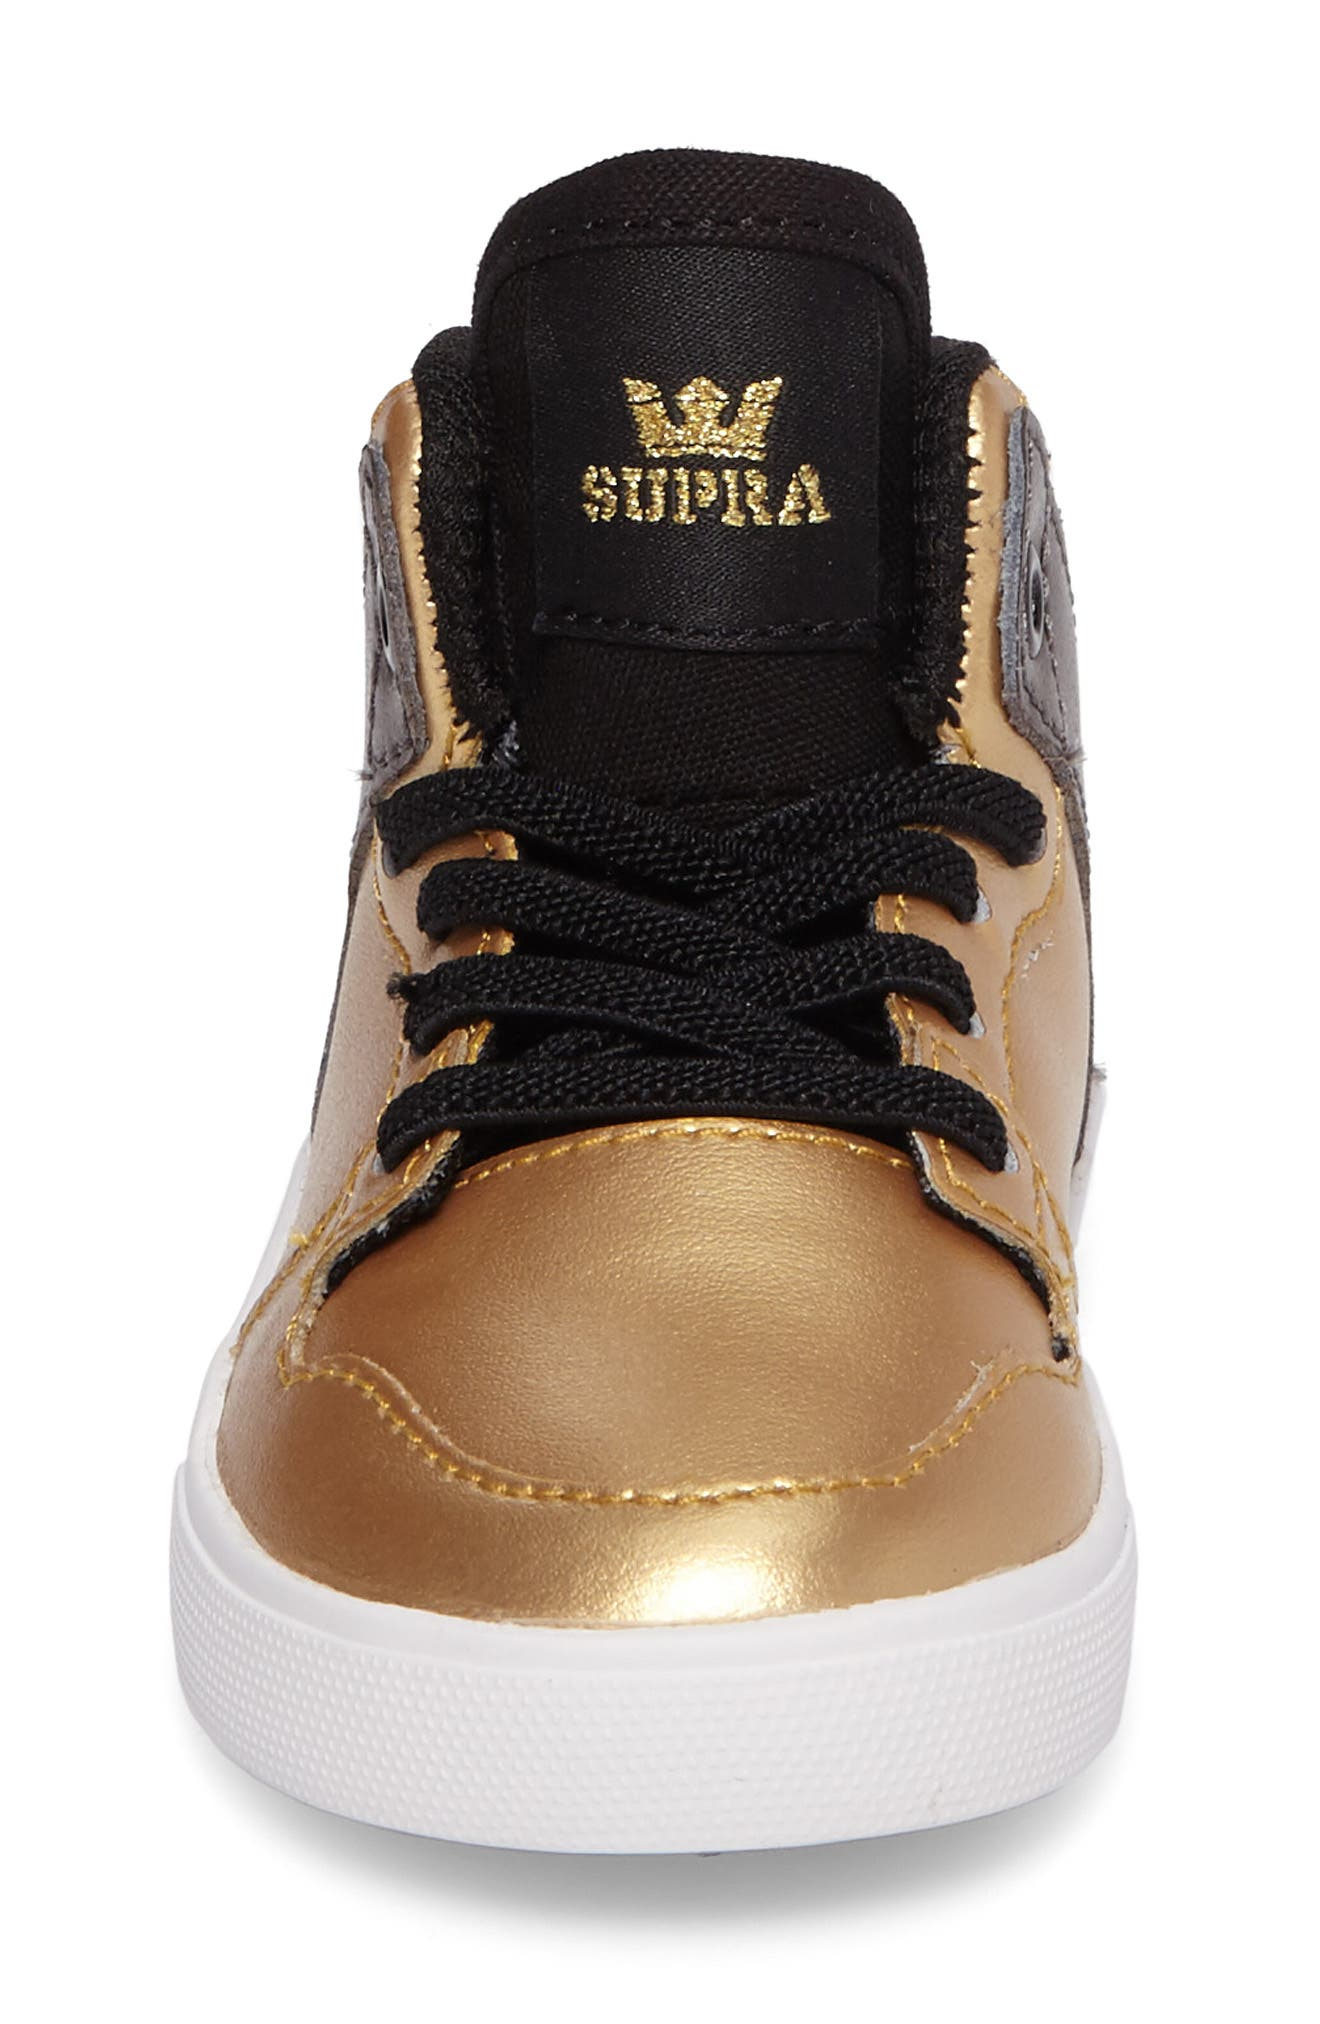 Vaider High Top Sneaker,                             Alternate thumbnail 2, color,                             Gold